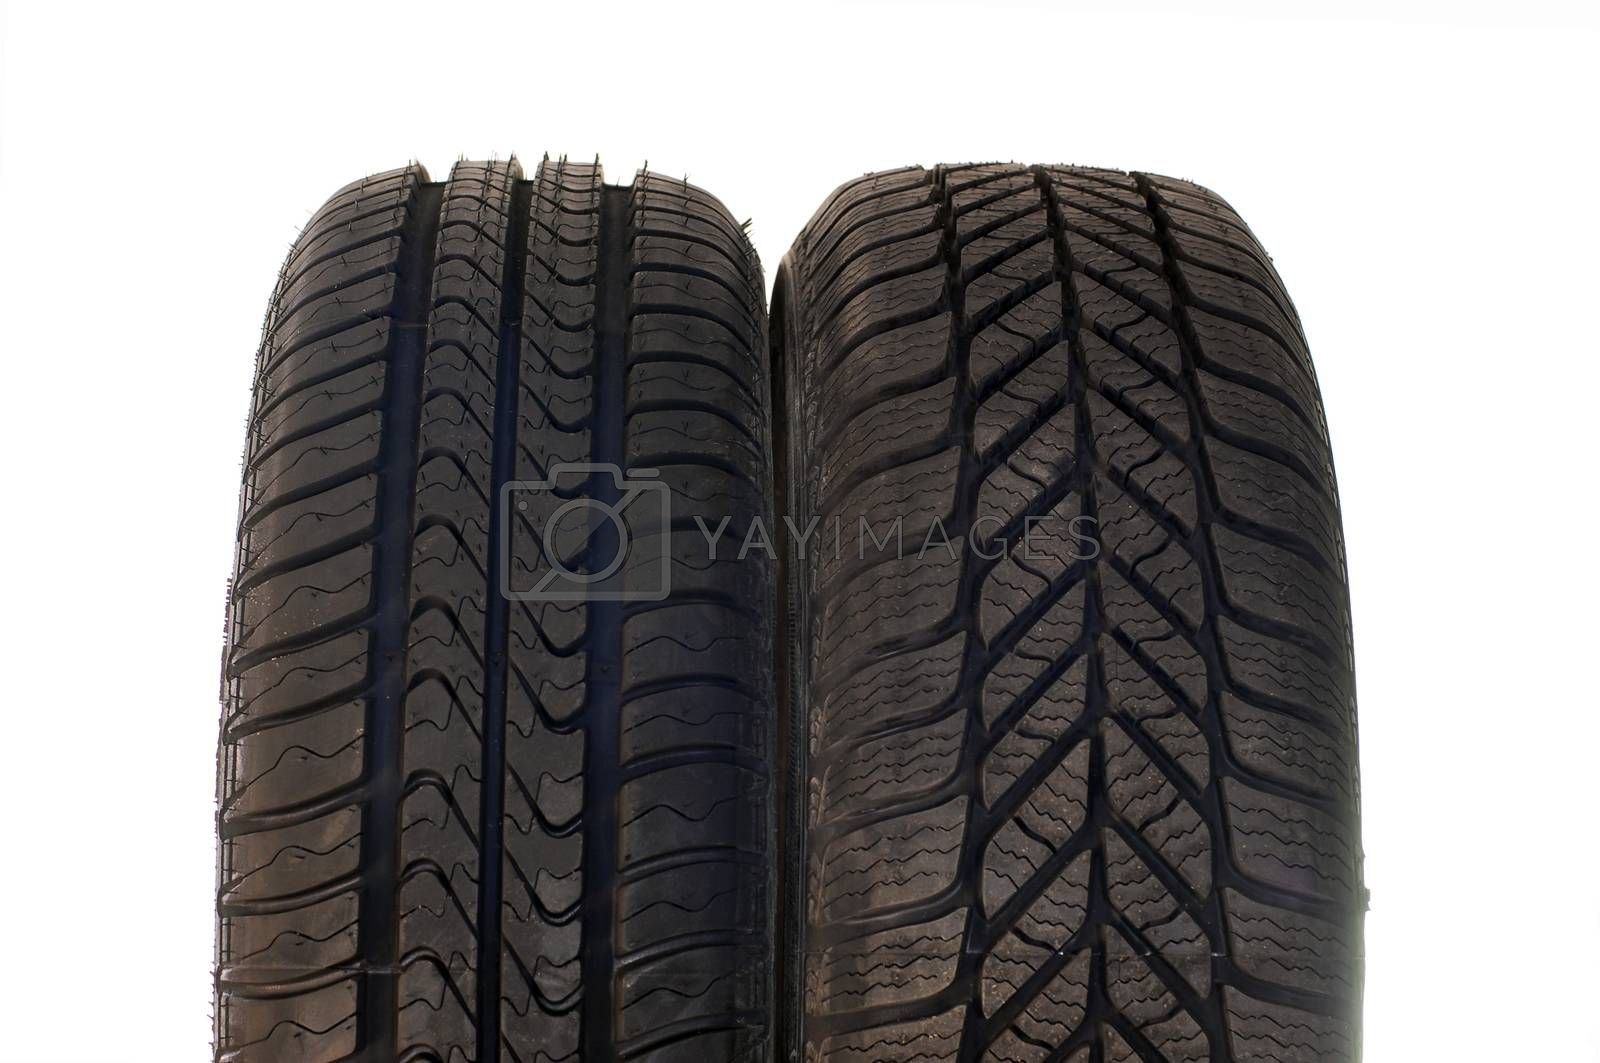 Brand new modern summer and winter car tires